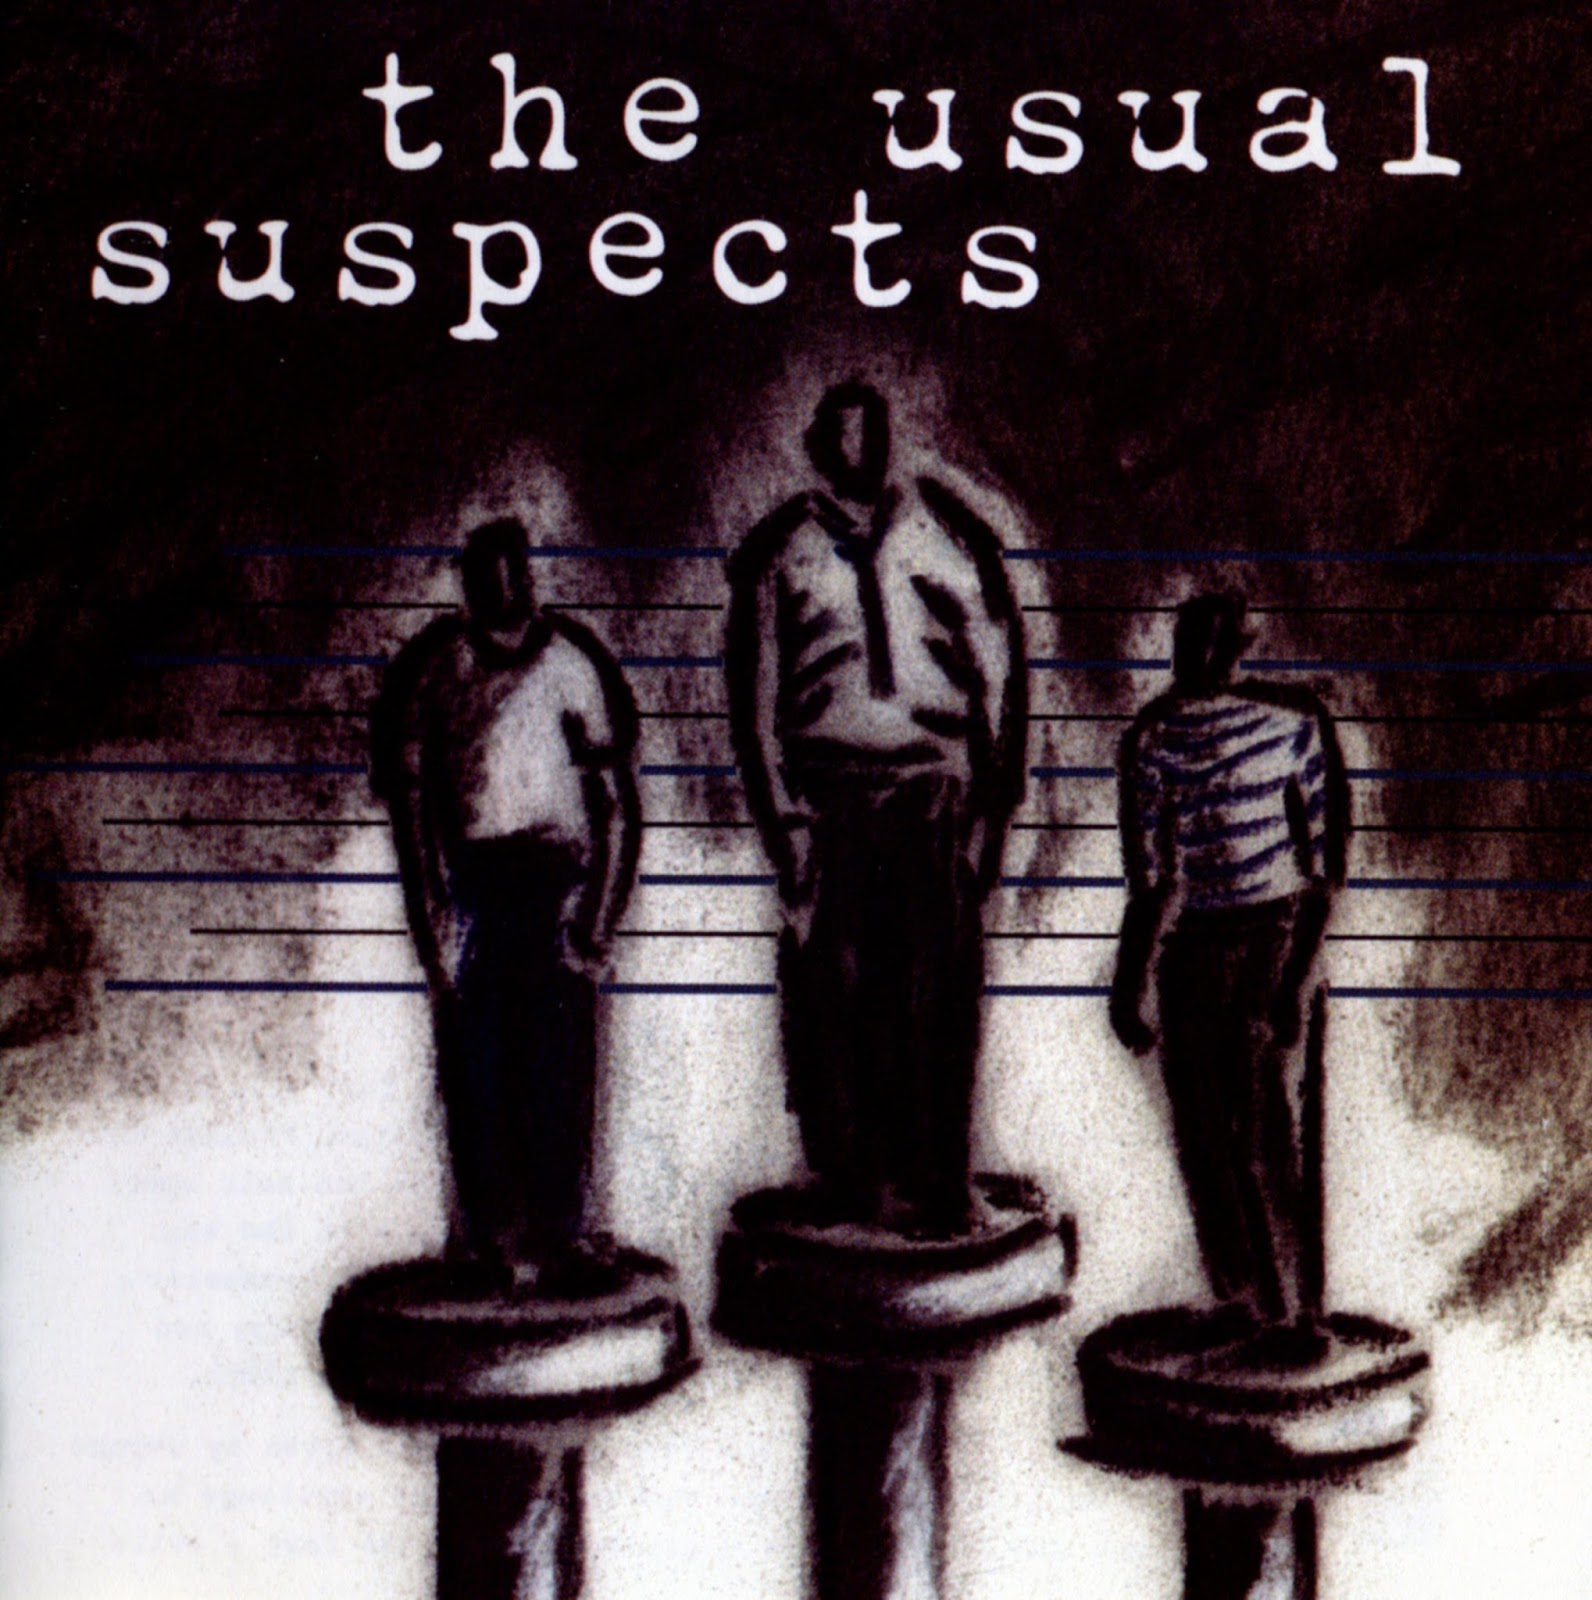 essay on the usual suspects The director uses several cinematic techniques and embeds a whole range of other techniques to create a dark atmosphere the opening foreshadows the sinister mood and atmosphere throughout the entirety of the movie.